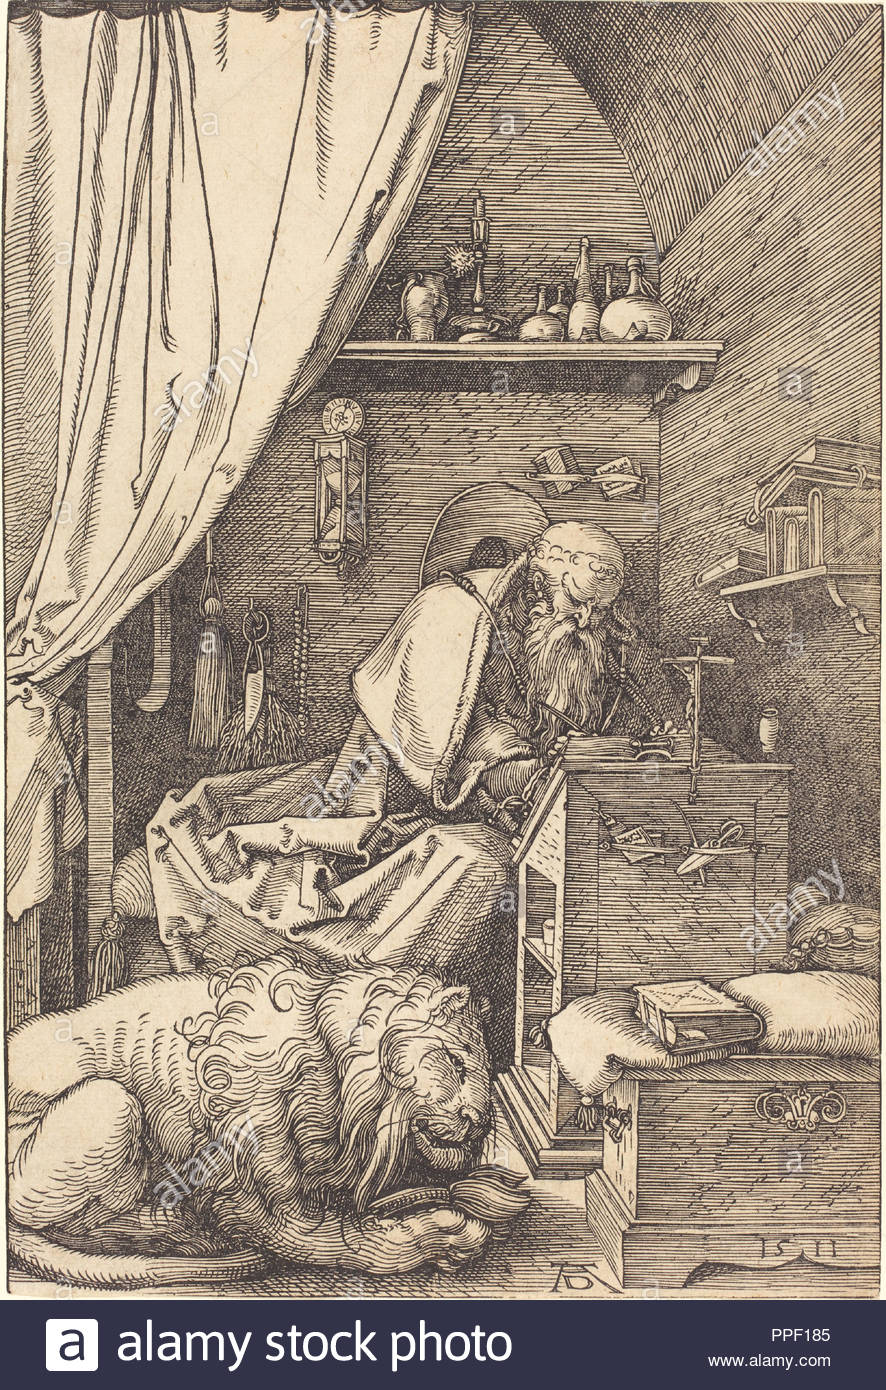 Dated: 1511. Medium: woodcut. Museum: National Gallery of Art, Washington  DC. Author: Dürer, Albrecht. ALBRECHT DUERER.